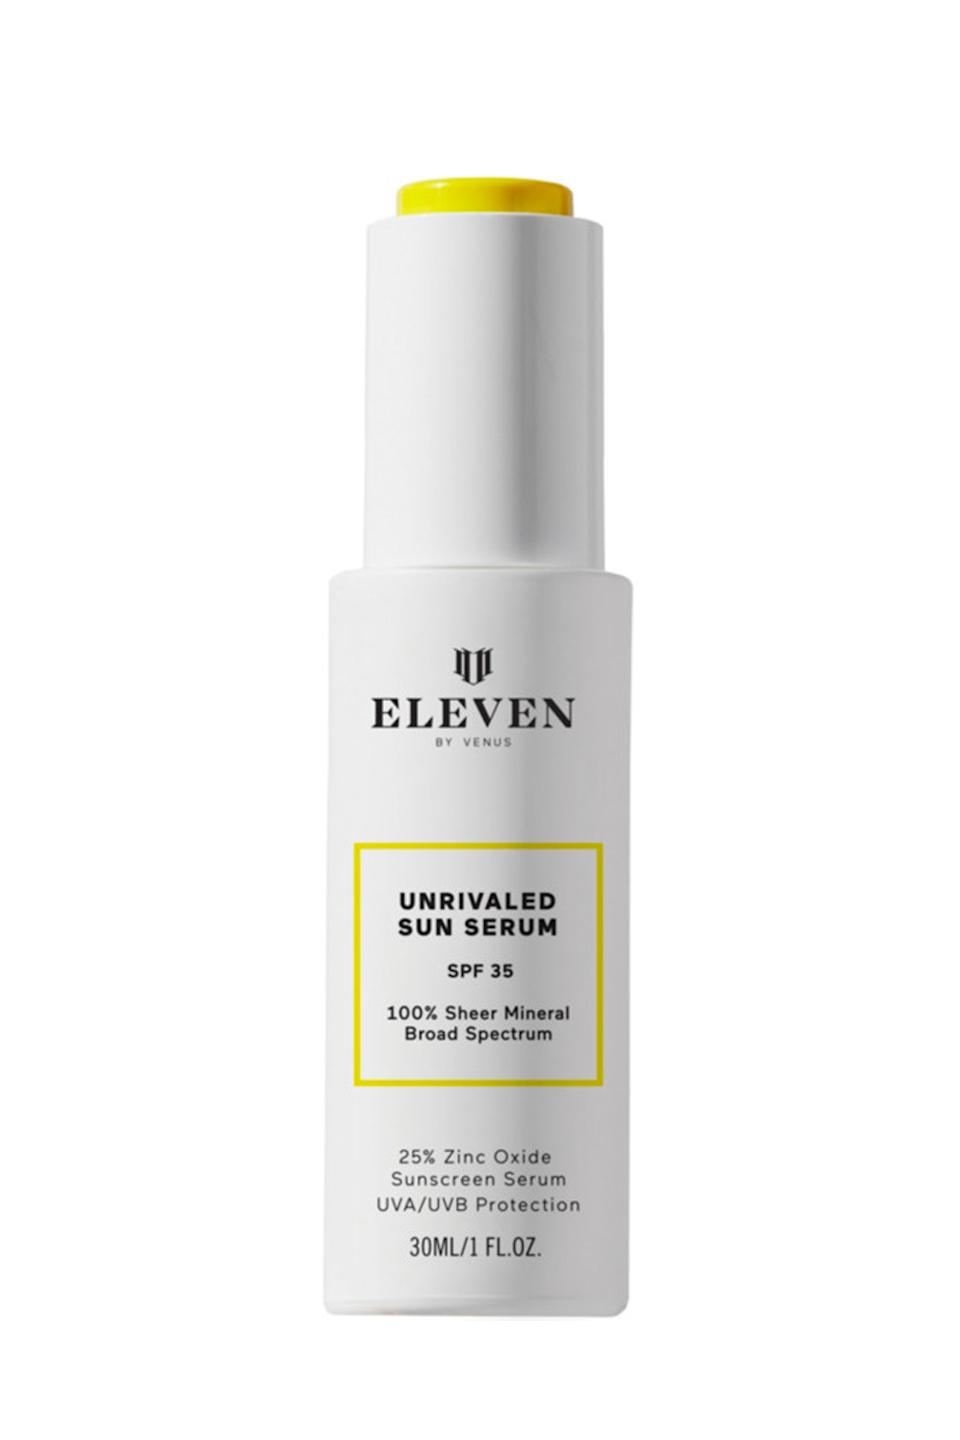 """<p><strong>EleVen by Venus Williams</strong></p><p>ulta.com</p><p><strong>$50.00</strong></p><p><a href=""""https://go.redirectingat.com?id=74968X1596630&url=https%3A%2F%2Fwww.ulta.com%2Funrivaled-sun-serum-spf-35%3FproductId%3Dpimprod2018175&sref=https%3A%2F%2Fwww.cosmopolitan.com%2Fstyle-beauty%2Fbeauty%2Fg35993297%2Fpregnancy-safe-sunscreen%2F"""" rel=""""nofollow noopener"""" target=""""_blank"""" data-ylk=""""slk:Shop Now"""" class=""""link rapid-noclick-resp"""">Shop Now</a></p><p>I get it: Thick, creamy sunscreens aren't for everyone. This <strong>SPF <a href=""""https://www.cosmopolitan.com/style-beauty/beauty/g25360983/best-face-serum/"""" rel=""""nofollow noopener"""" target=""""_blank"""" data-ylk=""""slk:serum"""" class=""""link rapid-noclick-resp"""">serum</a> is <em>super</em> lightweight </strong>though—like, light enough that even sunscreen-haters will feel comfy wearing it daily. Bonus: There's no need to worry about a white cast with this pregnancy-safe sunscreen. It goes on clear and quickly dries down into a velvety finish.</p>"""